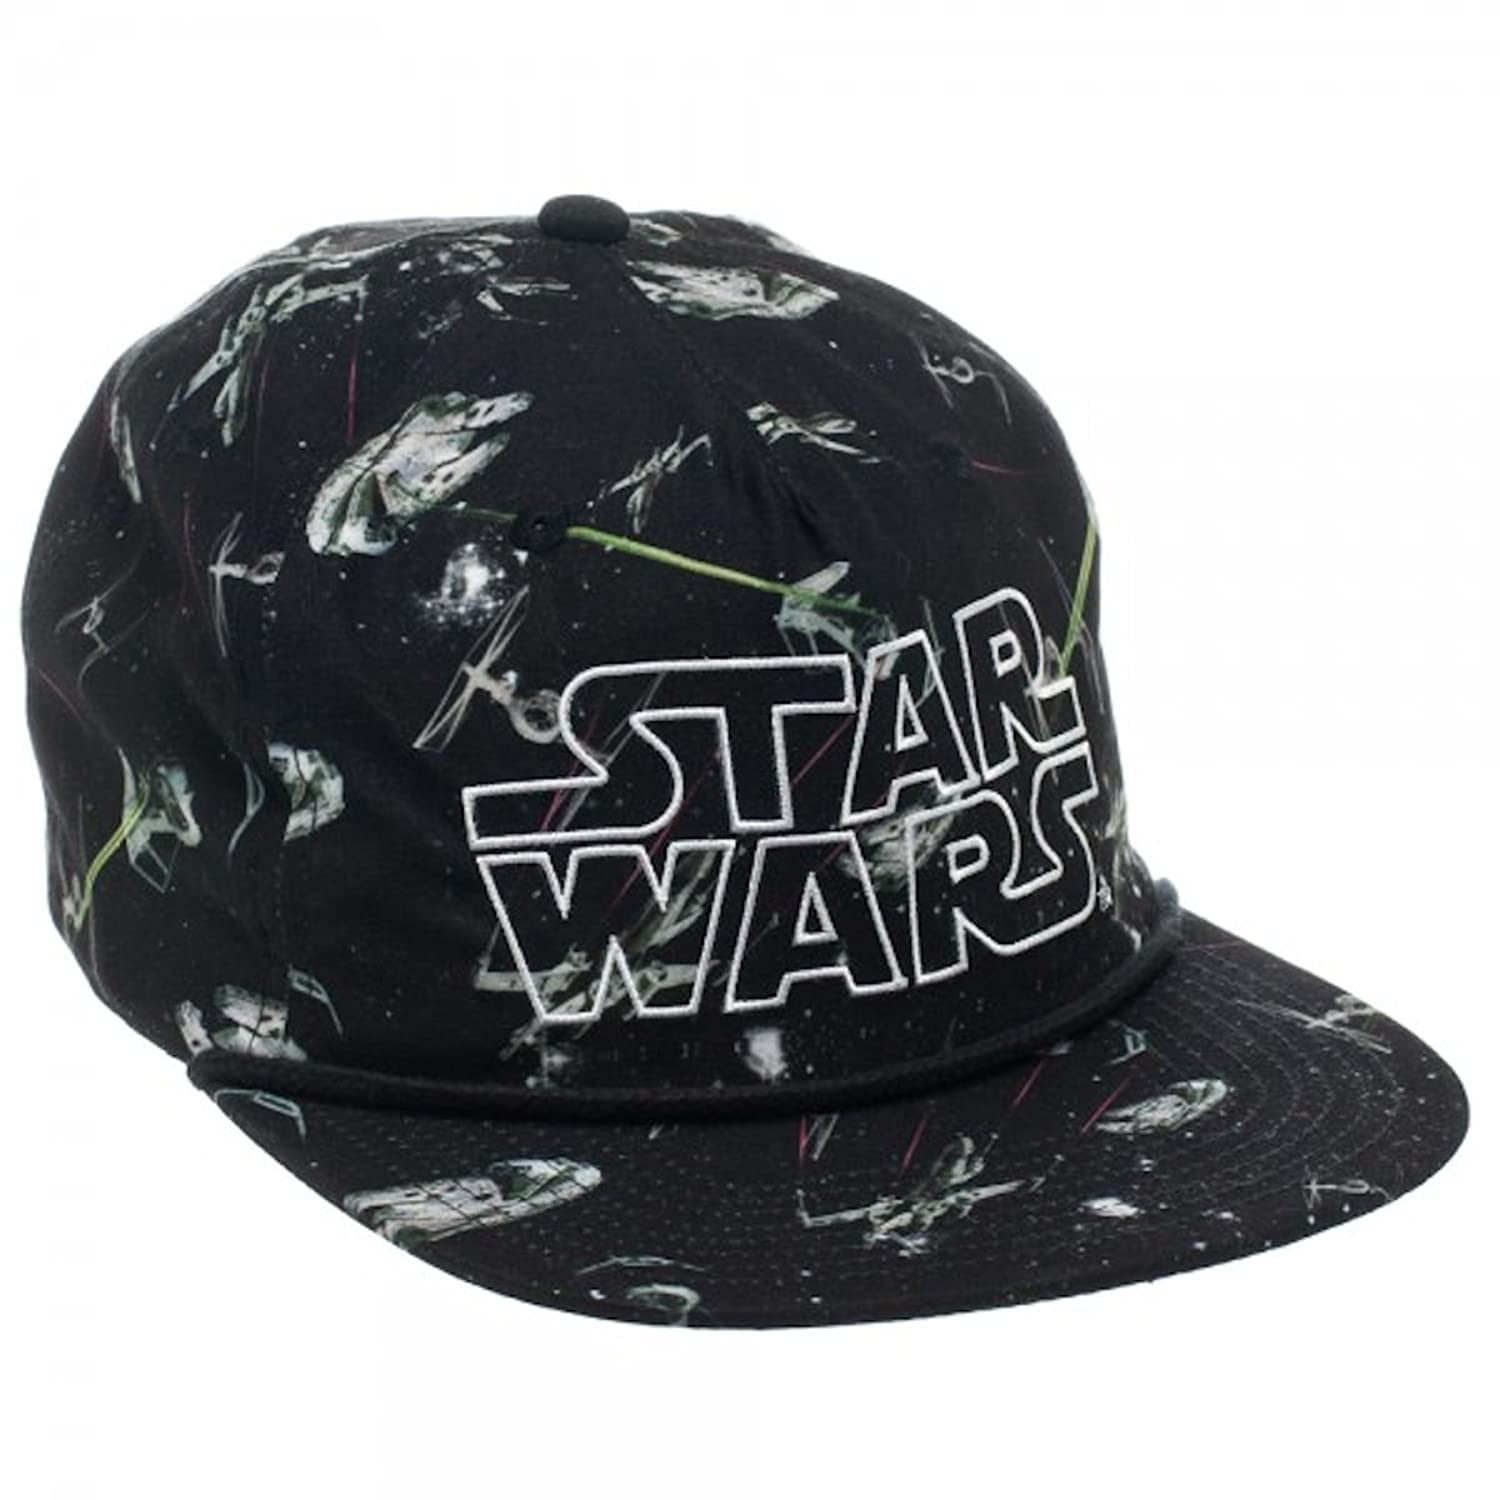 b3d57ff2271 ... new zealand amazon bioworld star wars official snapback one size fits  most sublimated print hat clothing